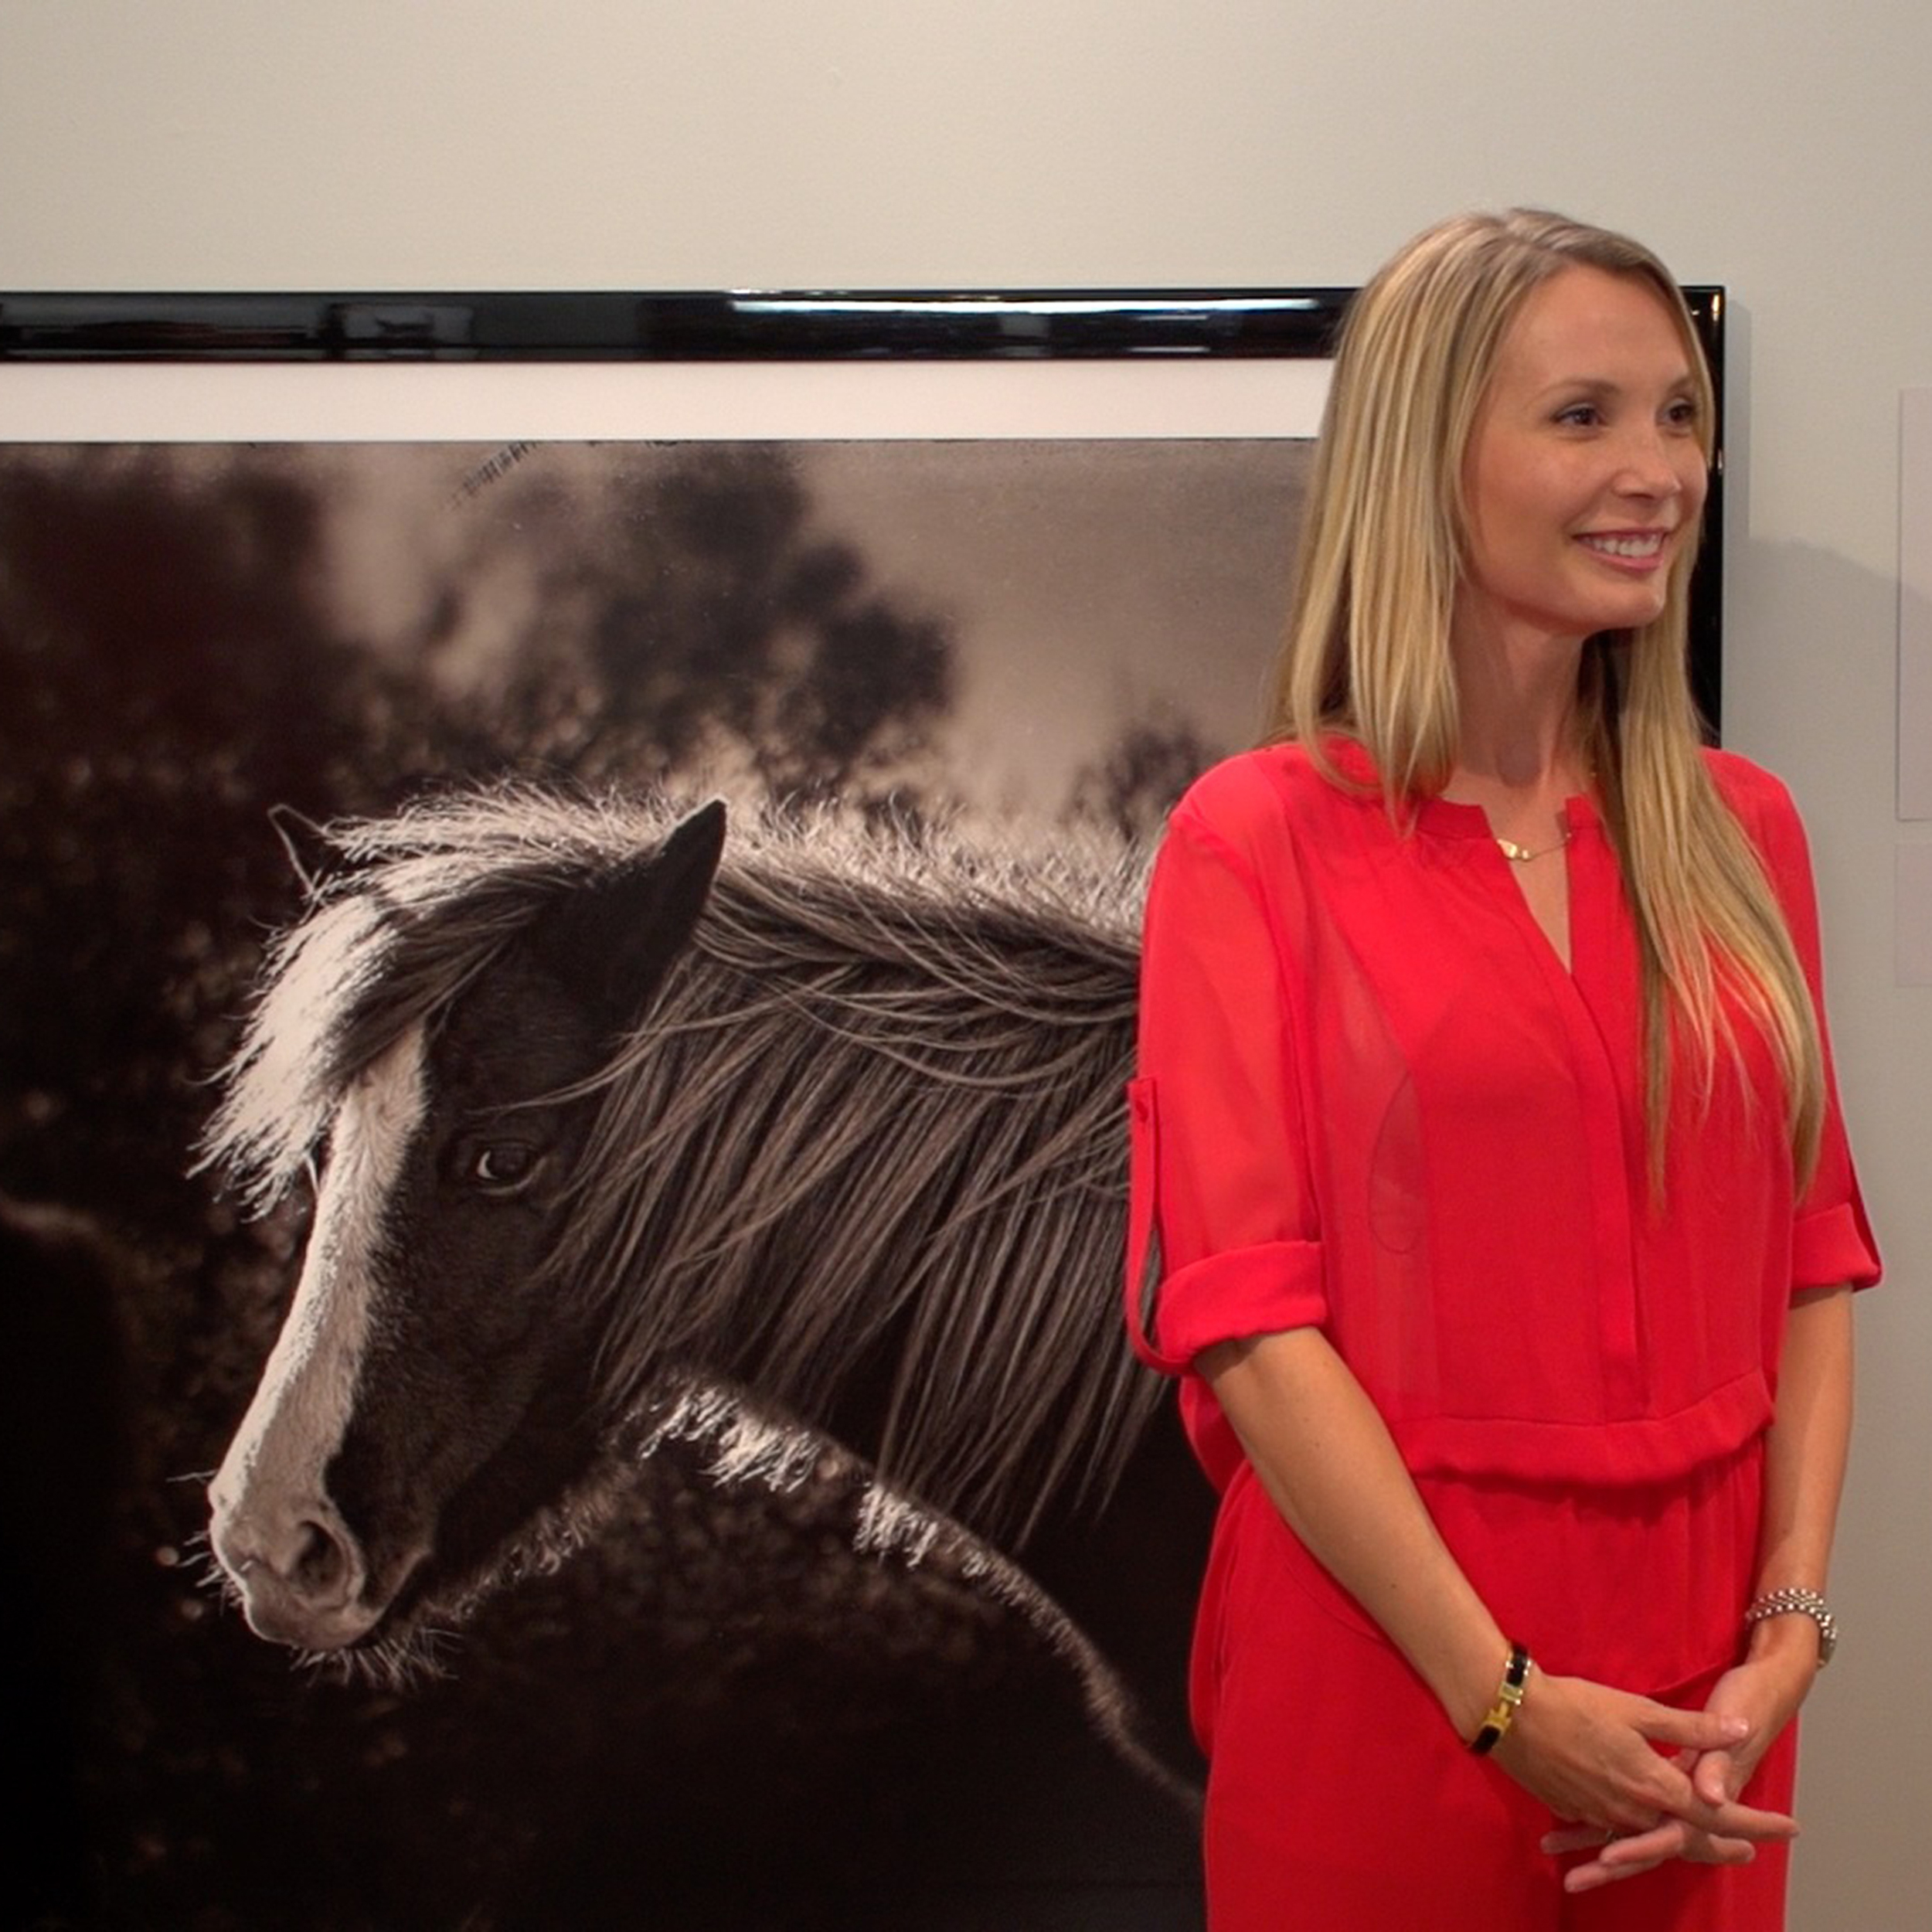 Discussing the collection and Special Equestrians